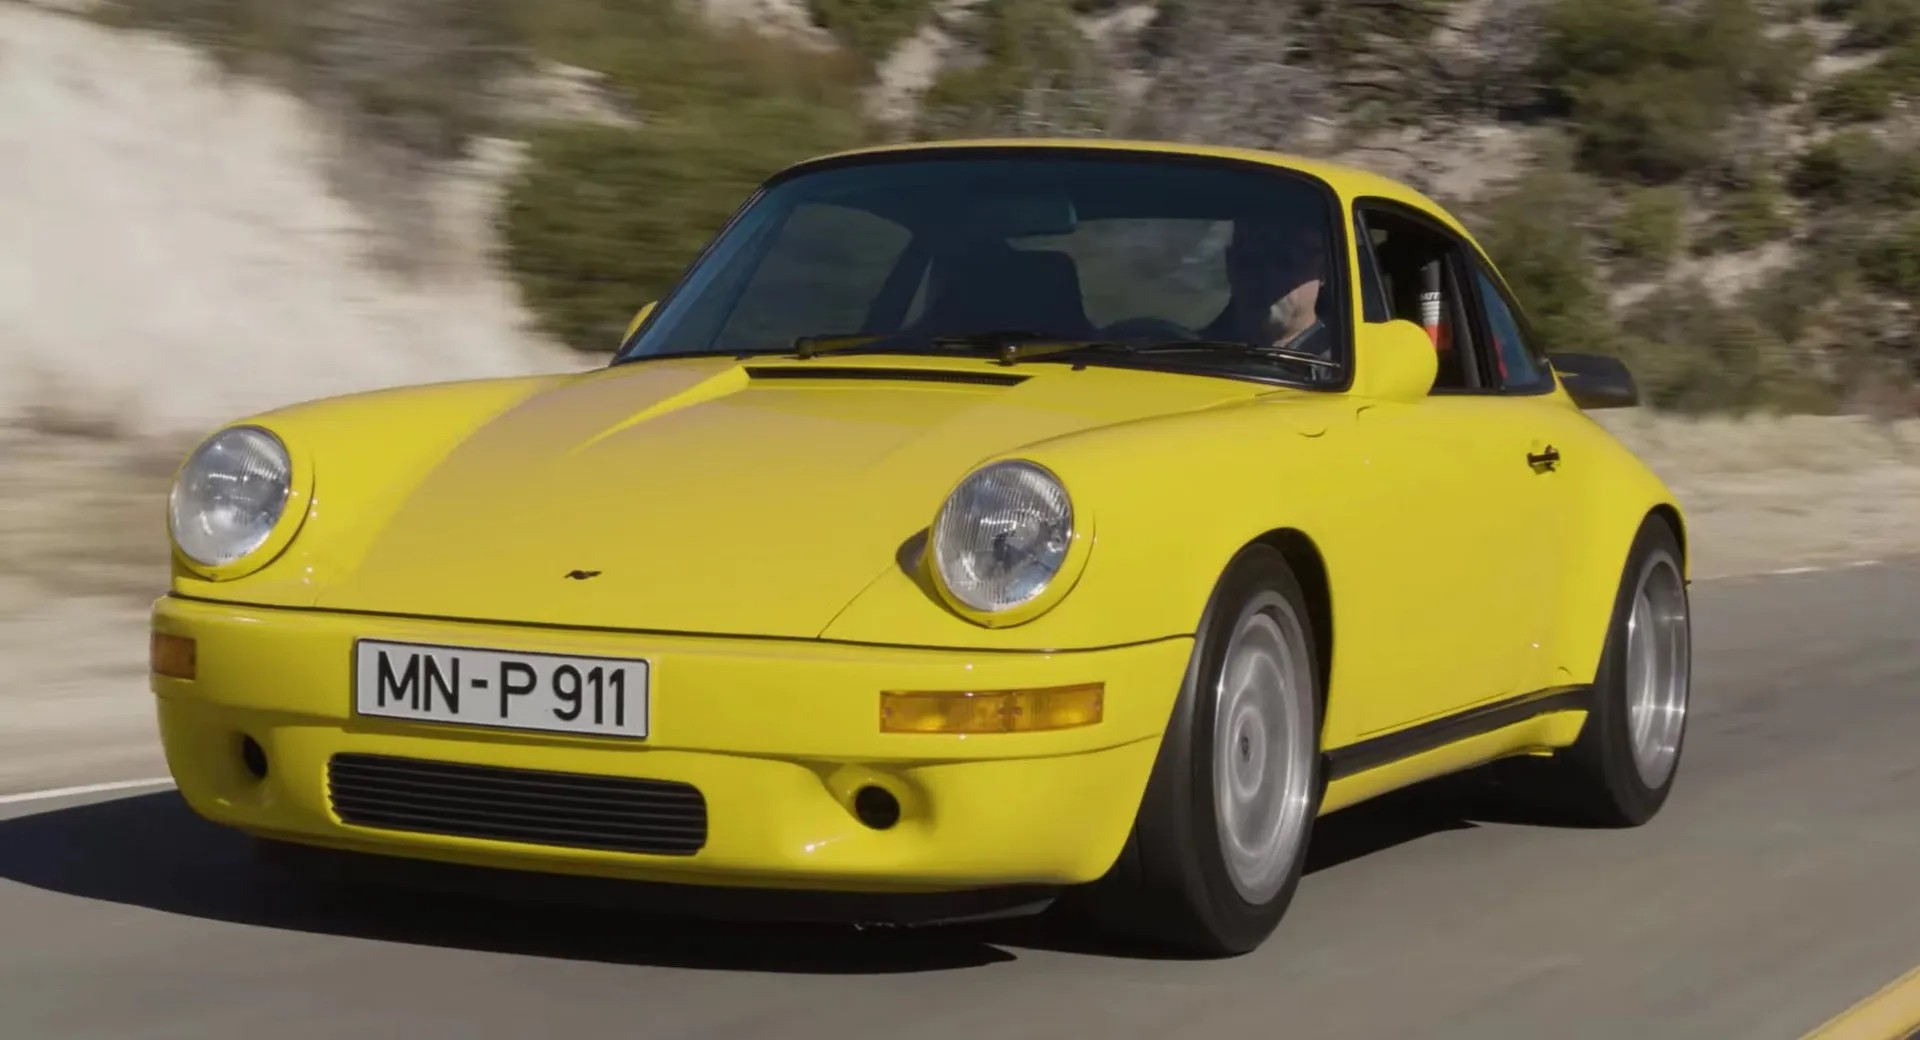 Only those of us born before the late eighties remember the RUF CTR Yellowbird for the legendary track weapon that it was. In his latest video, Matt Farah provides an immersive history tour into the features and exploits of this truly fantastic tuned ride.